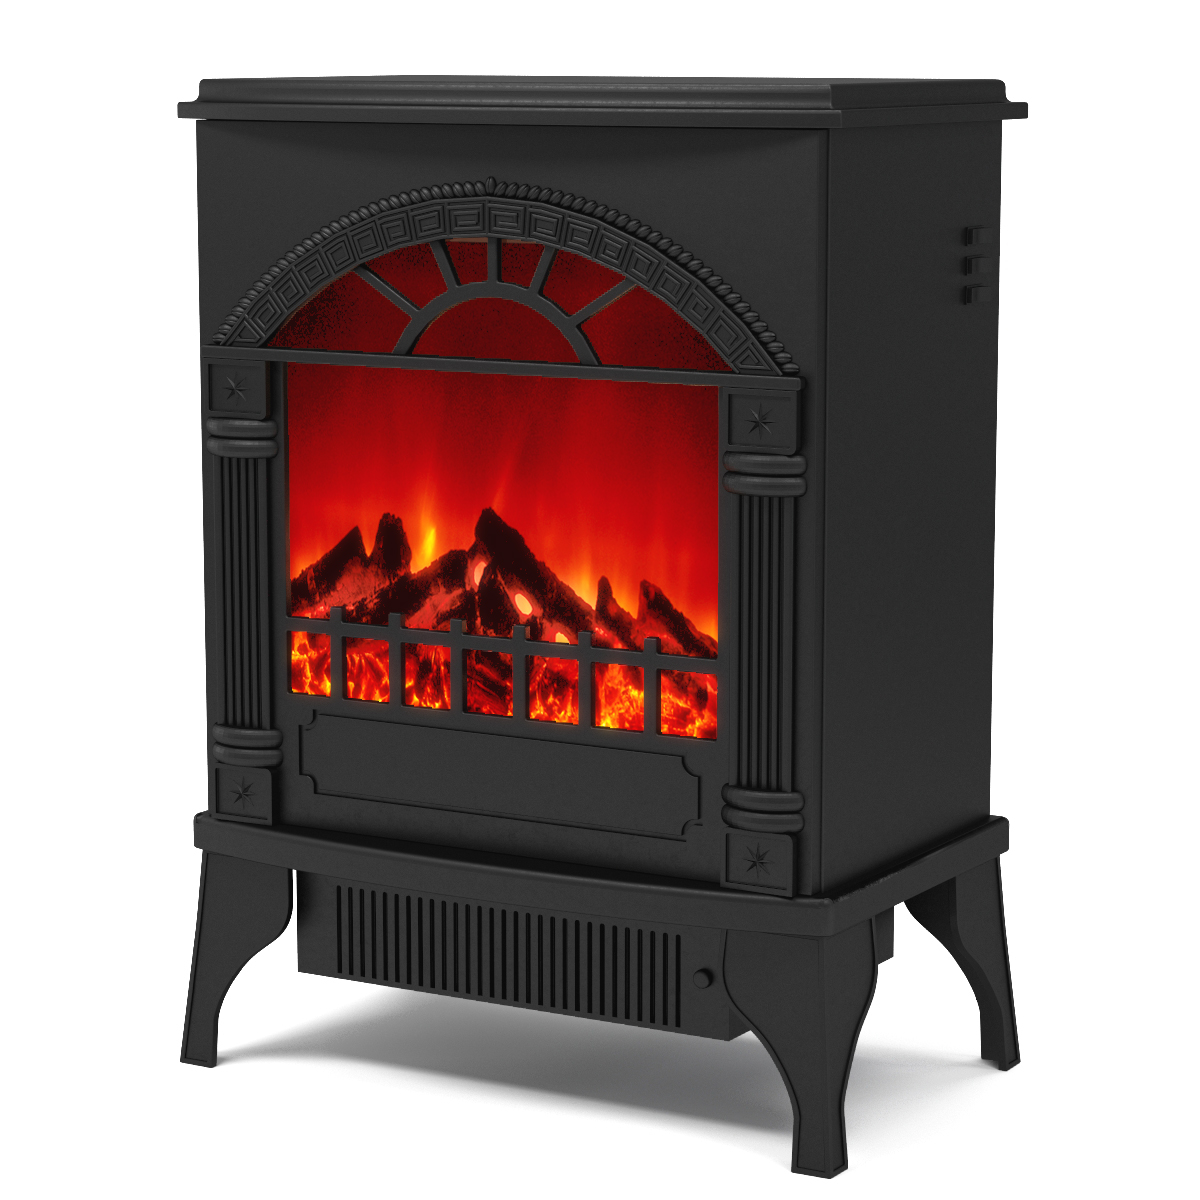 Apollo Electric Fireplace Free Standing Portable Space Heater Stove-Apollo Electric Fireplace Free Standing Portable Space Heater Stove The Apollo electric stove delivers a classic picture frame front and dancing flame in a small package. No need to